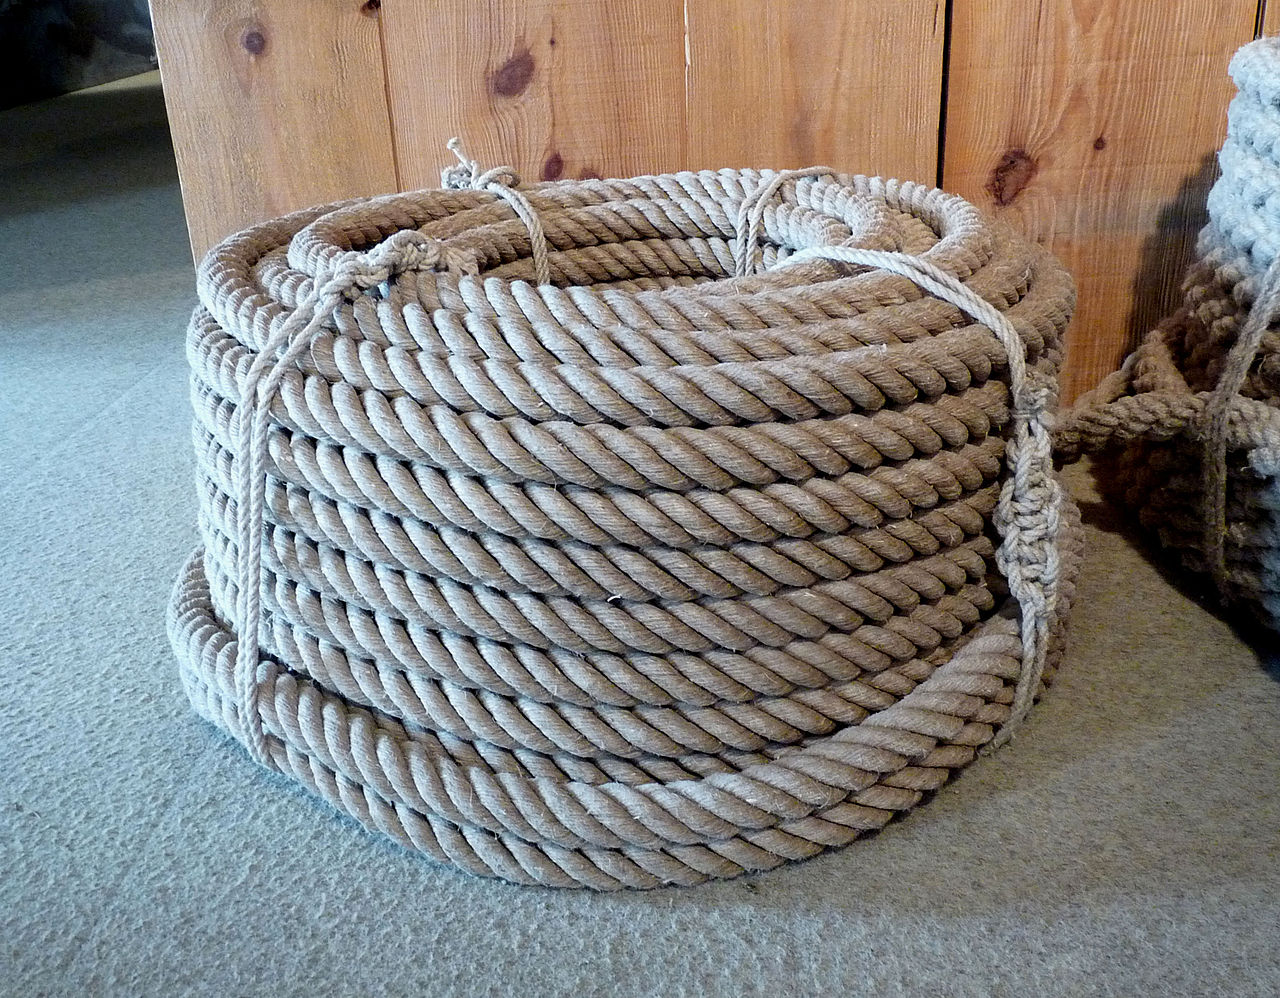 "Hemp rope. Source: Photo Cordage en chanvre"" by Ji-Elle - Own work. Licensed under CC BY-SA 3.0 via Commons."